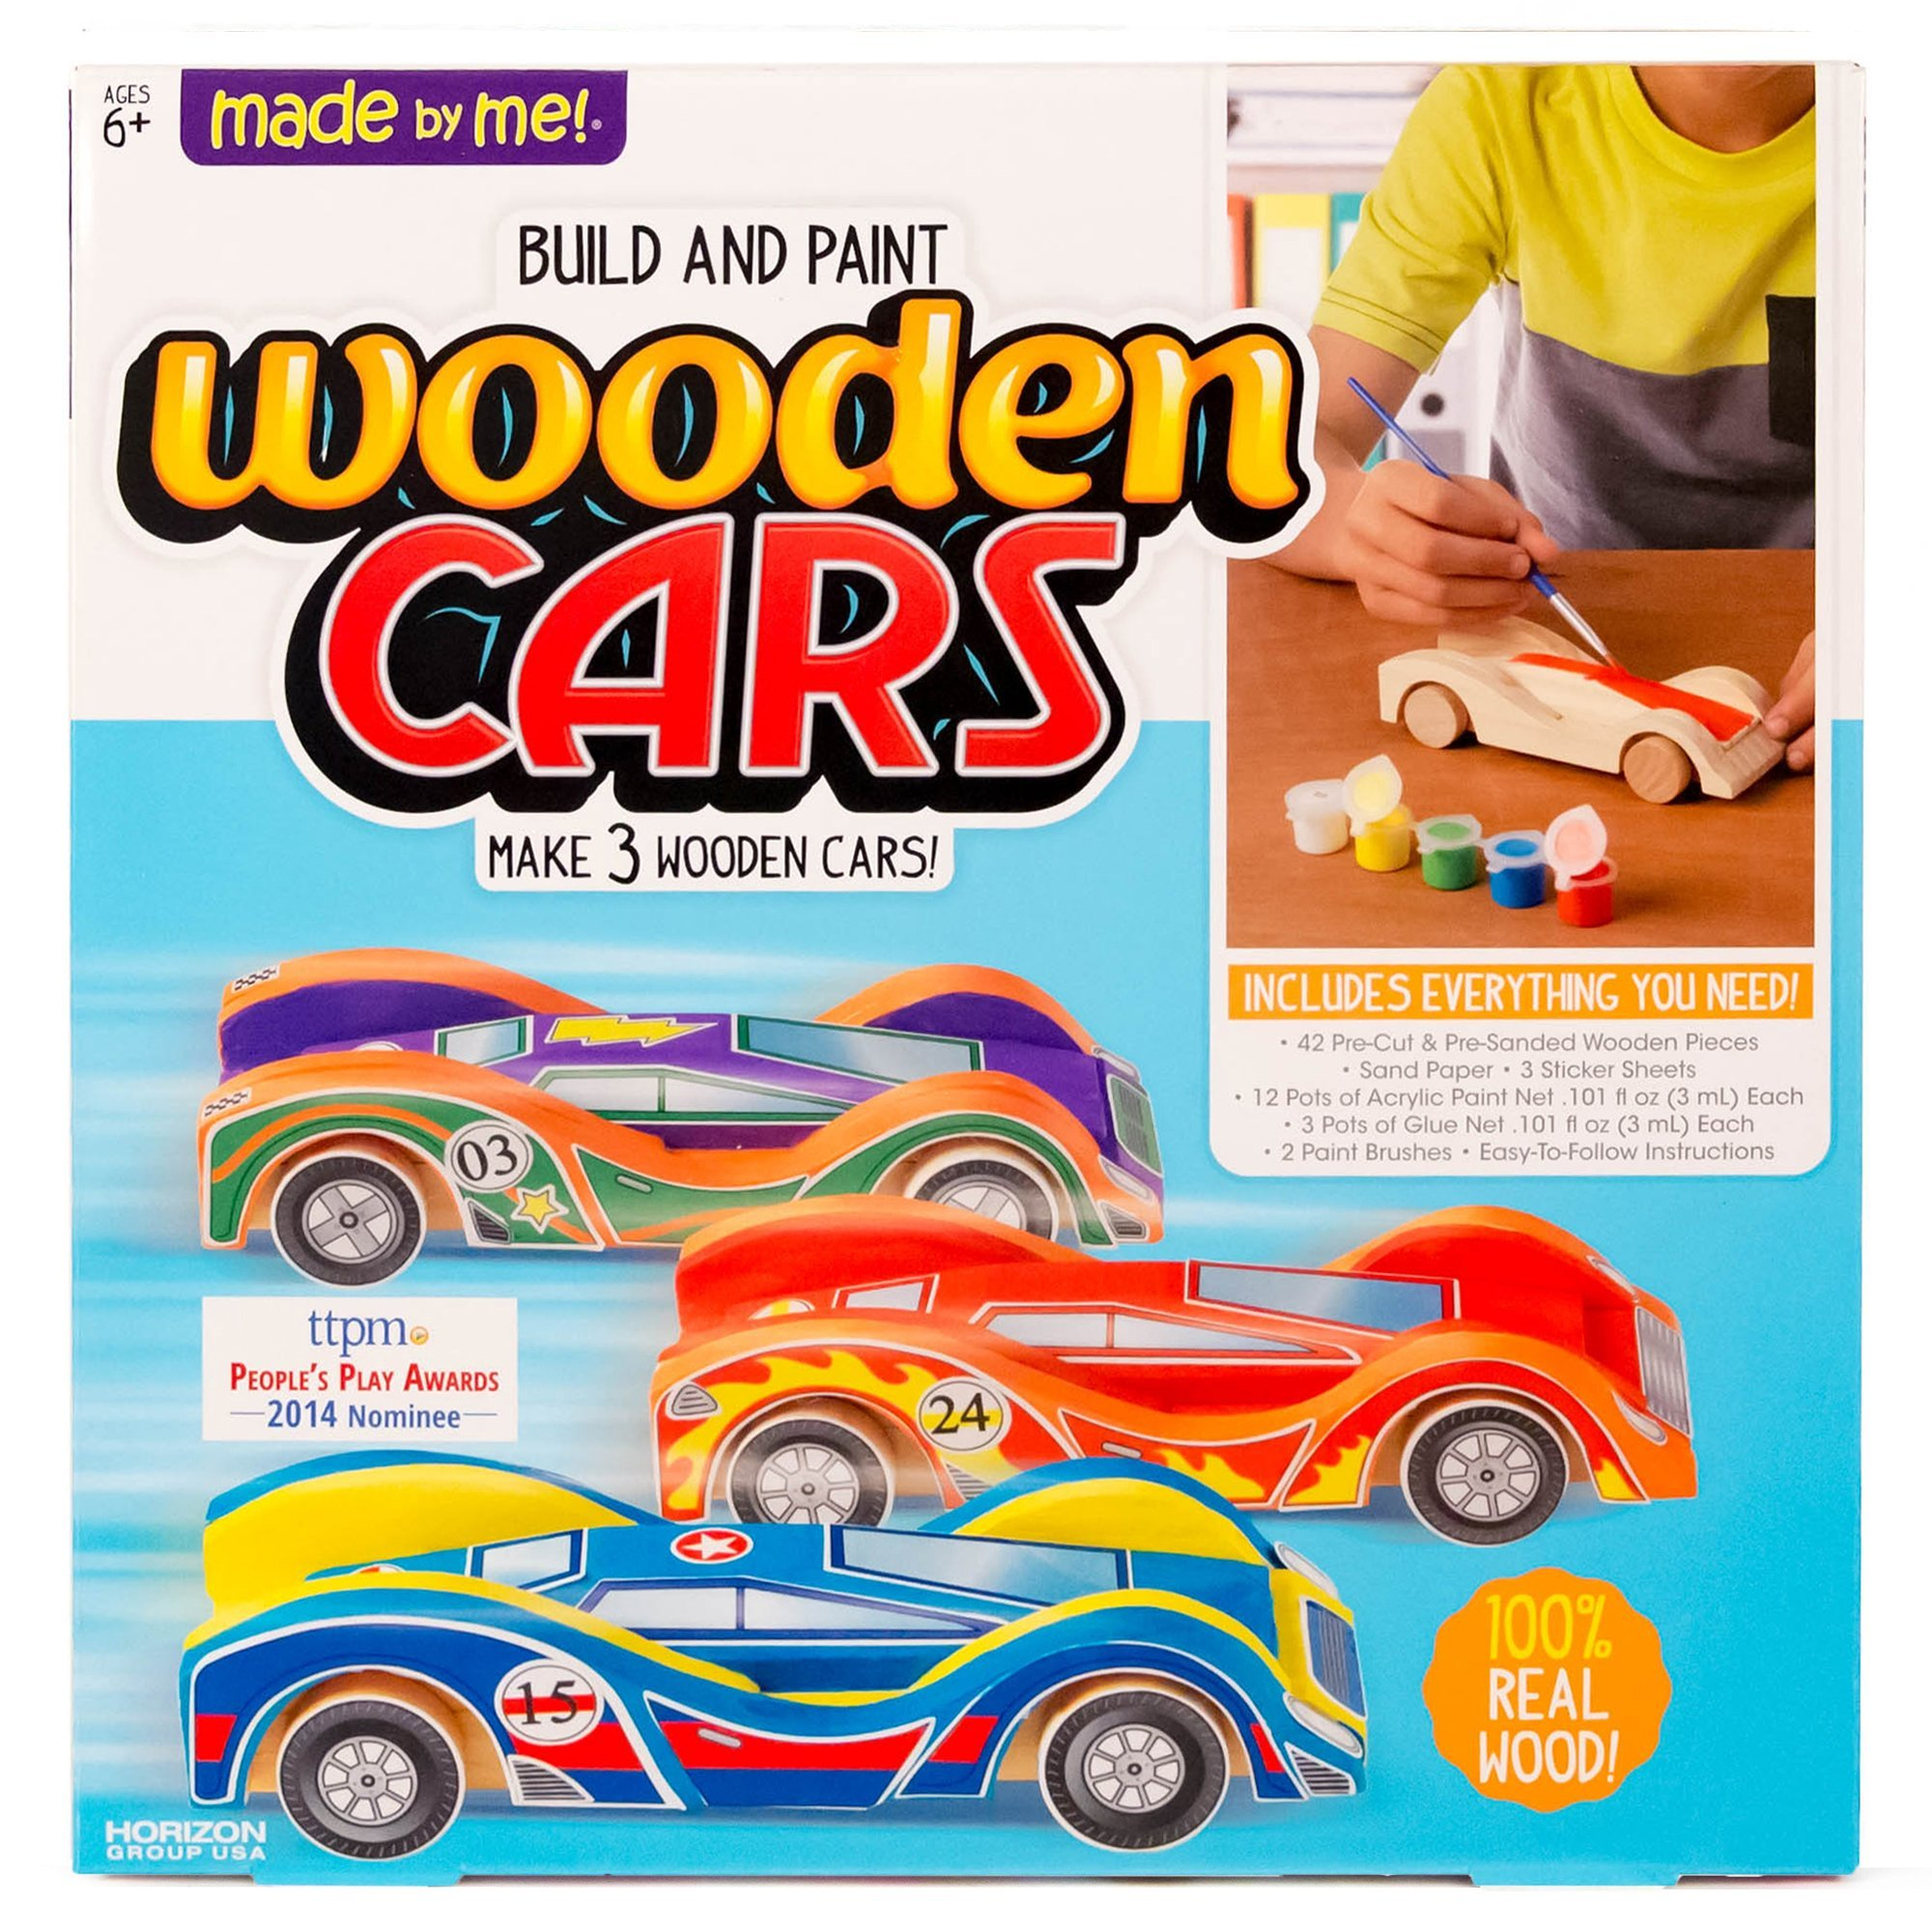 Made By Me Build & Paint Your Own Wooden Cars by Horizon Group Usa, DIY Wood Craft Kit, Easy To Assemble & Paint 3 Race Cars, Multicolored by Made By Me